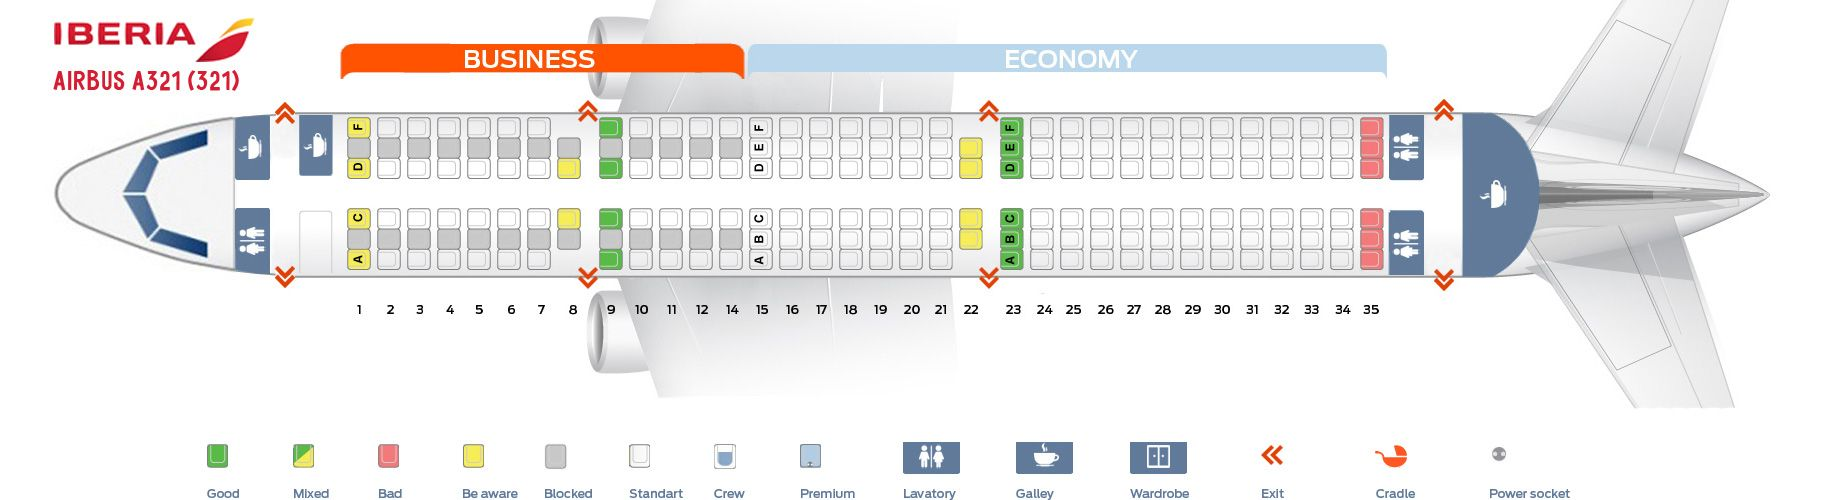 Seat Map And Seating Chart Iberia Airbus A321 200 Seating Plan Airbus Airbus A321 Seating Chart